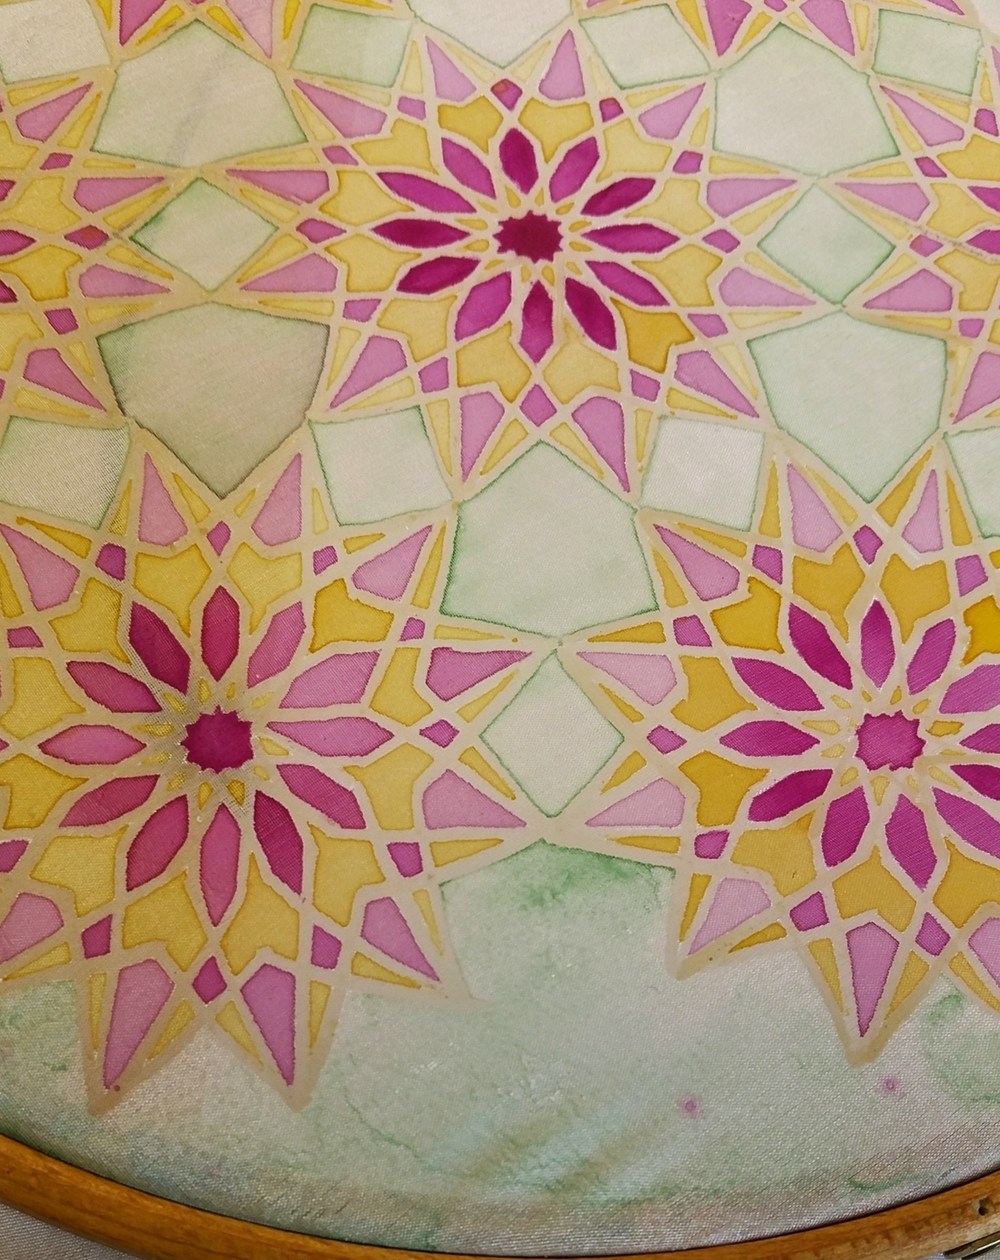 Geometry, Islamic Art, Pattern Design, Shaheen Kasmani.